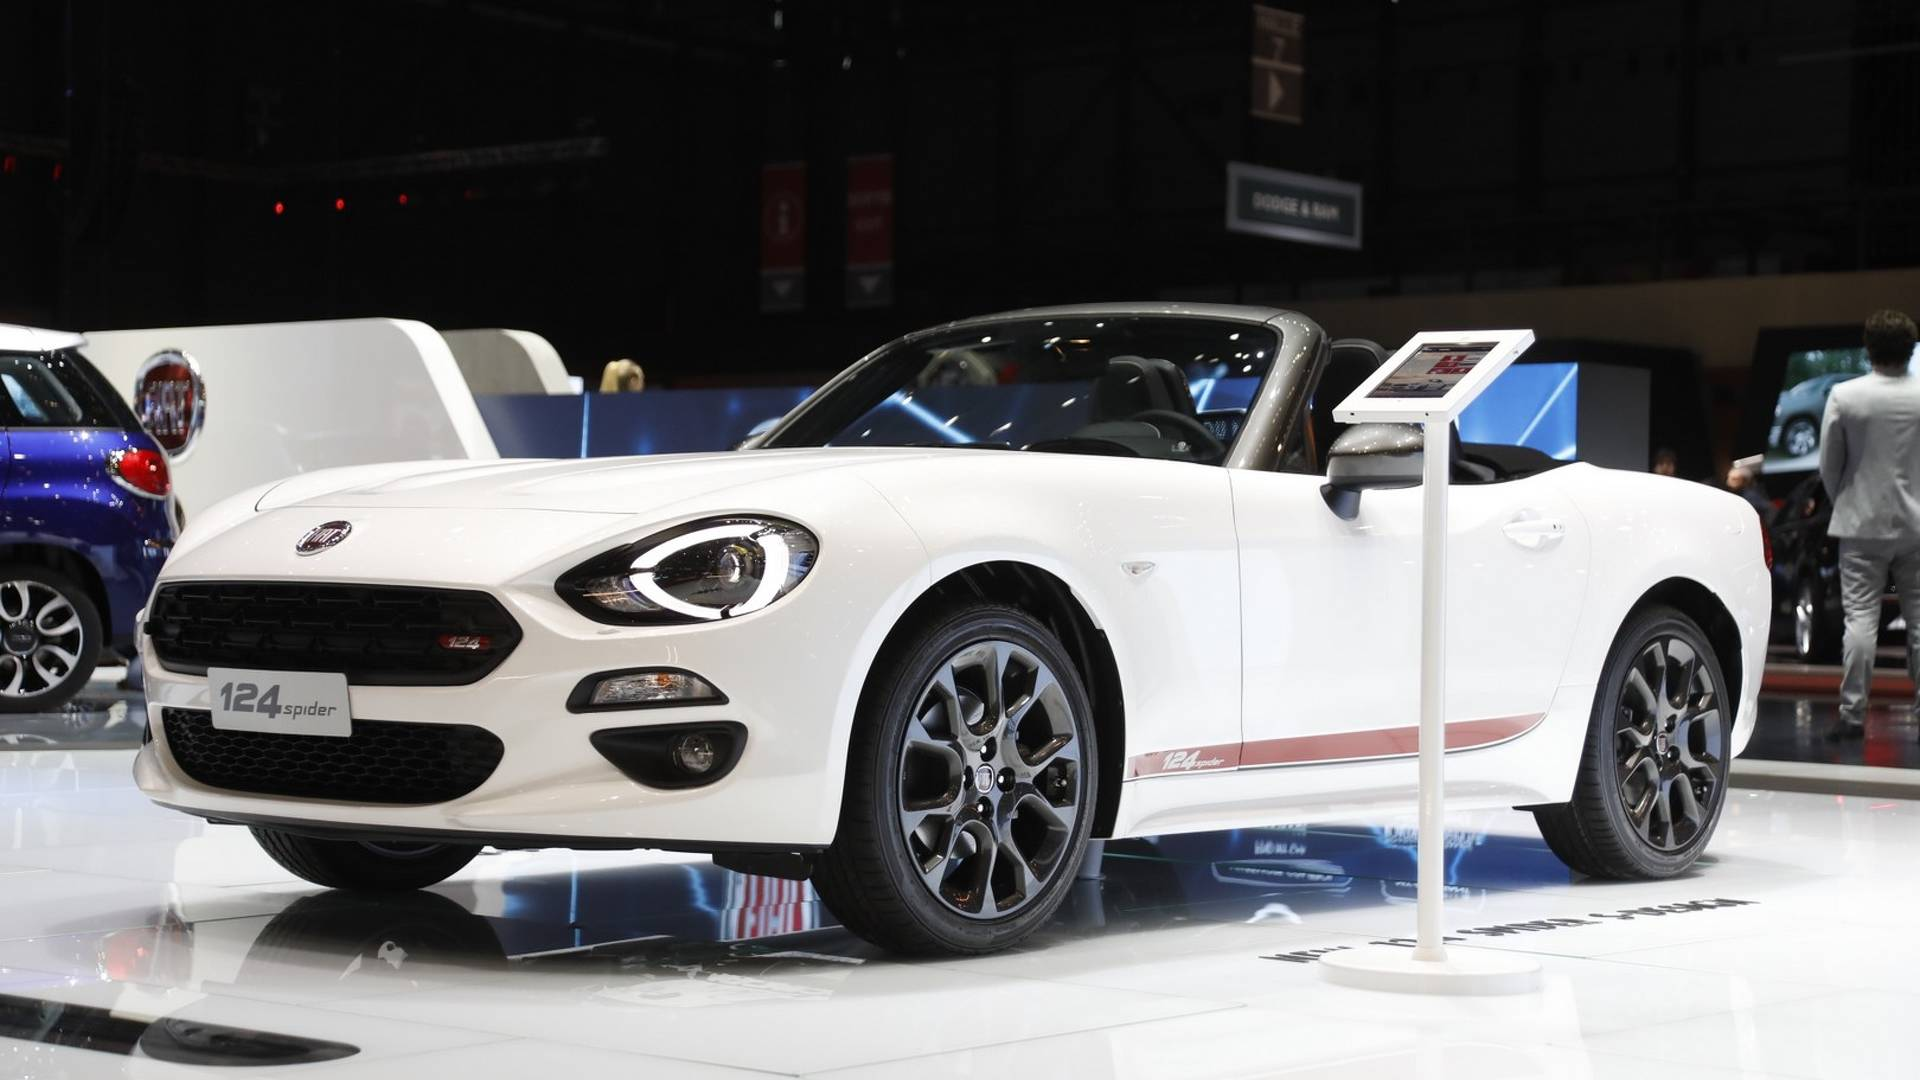 Fiat 124 Spider S Design Live From Geneva Motor Show Rear Axle Schematic